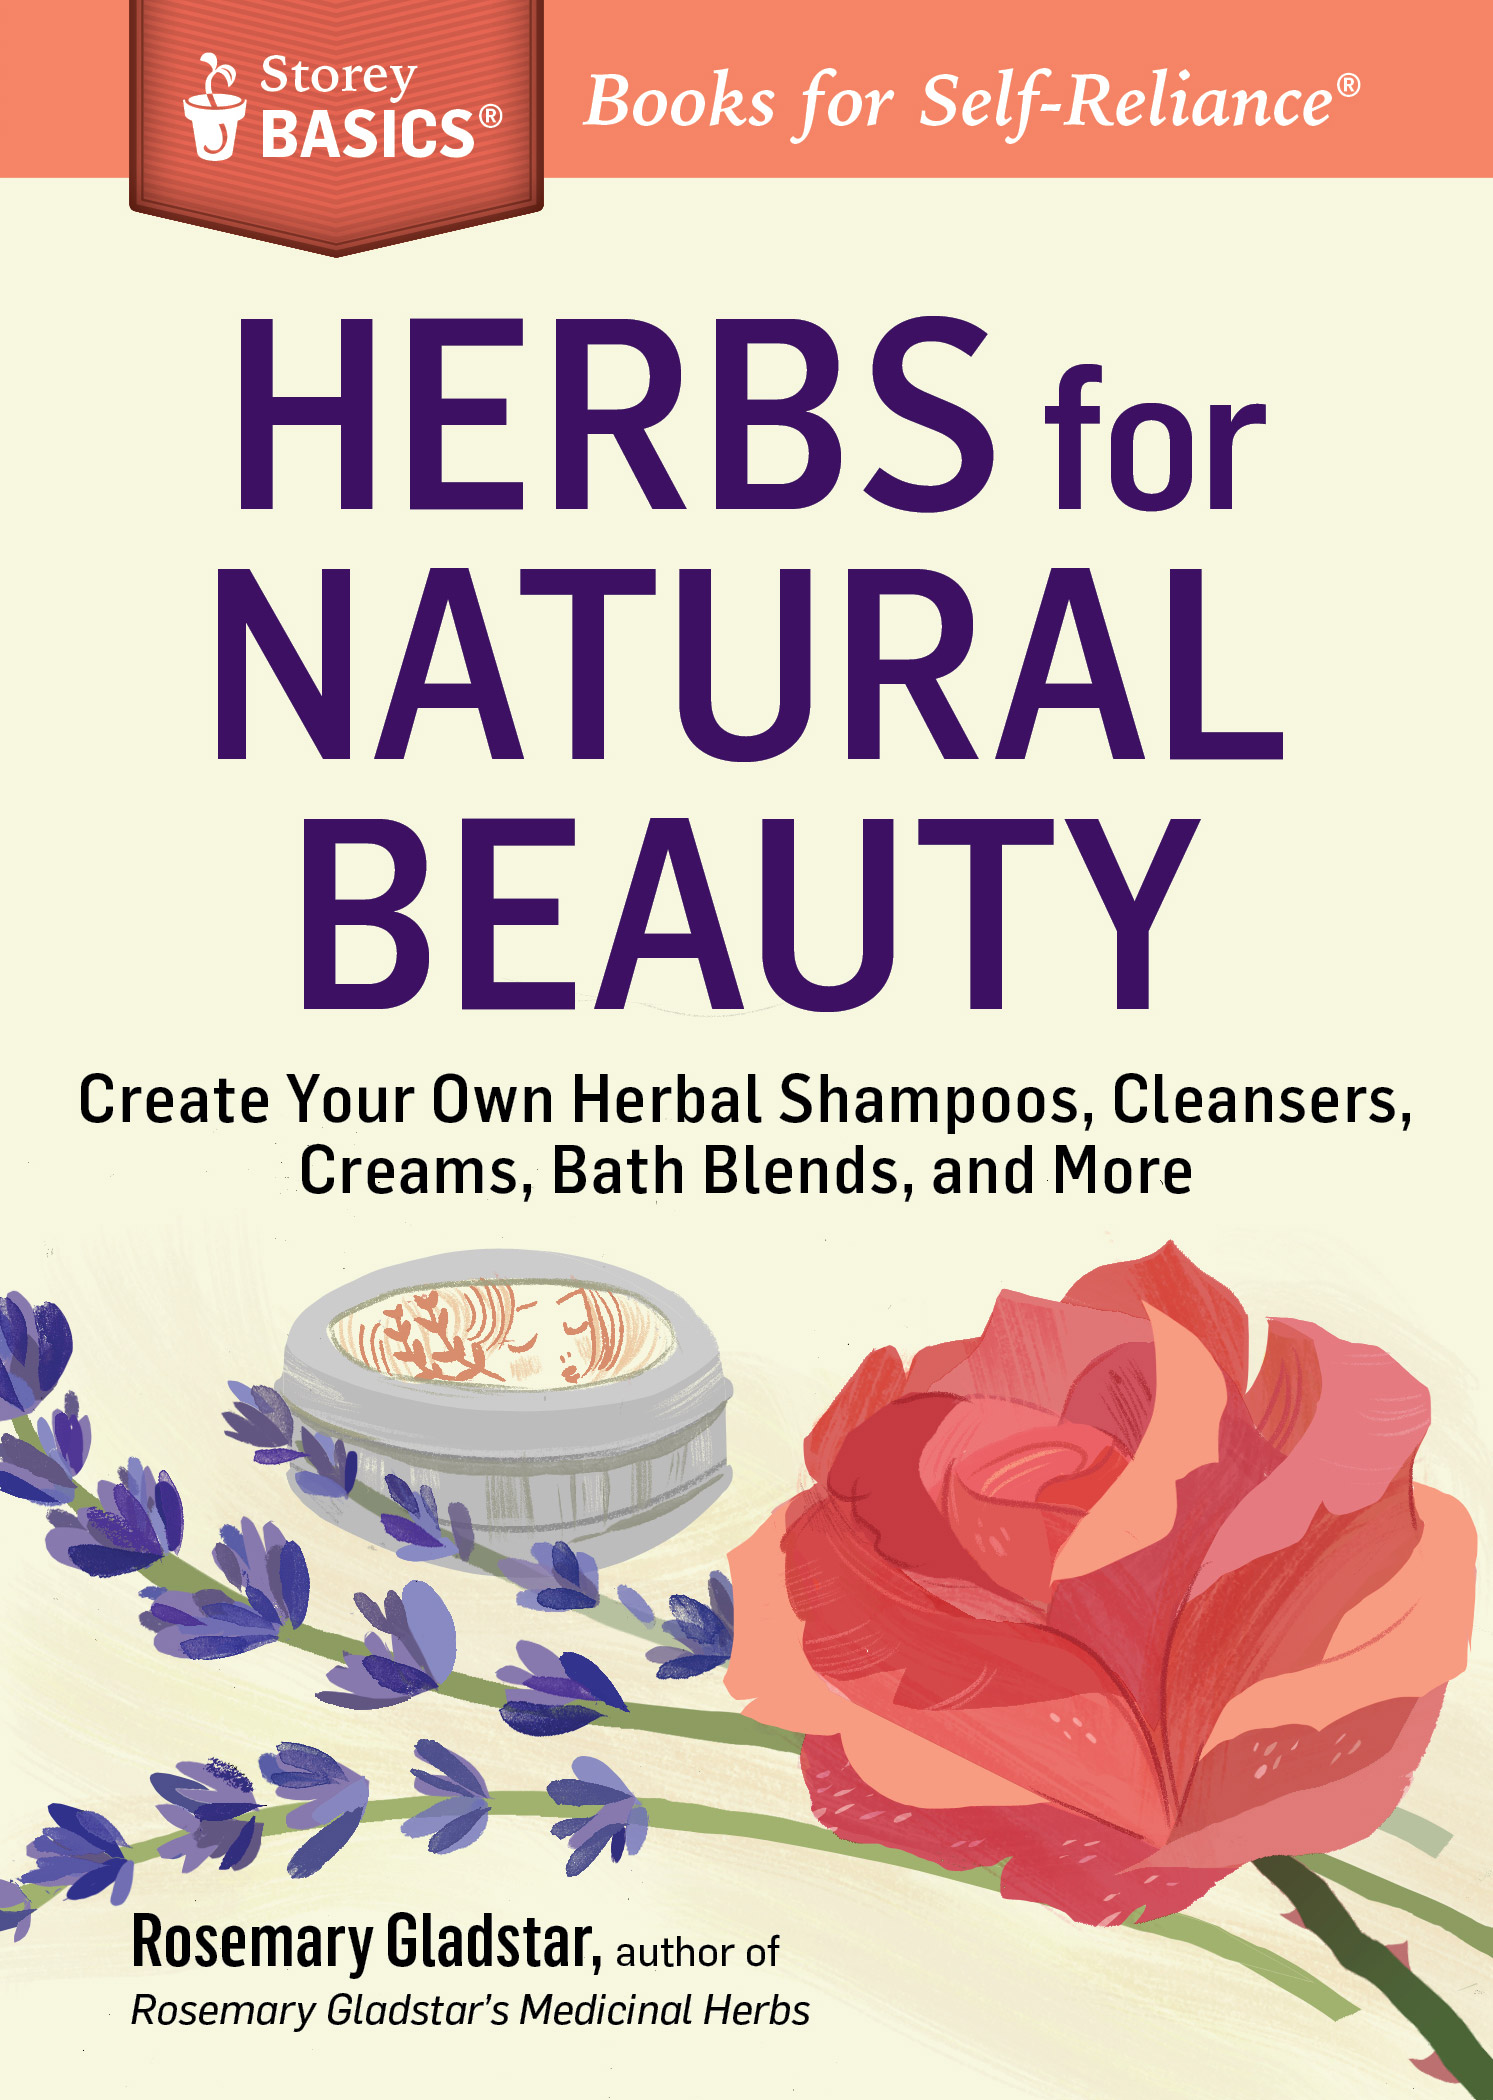 Herbs for Natural Beauty Create Your Own Herbal Shampoos, Cleansers, Creams, Bath Blends, and More. A Storey BASICS® Title - Rosemary Gladstar